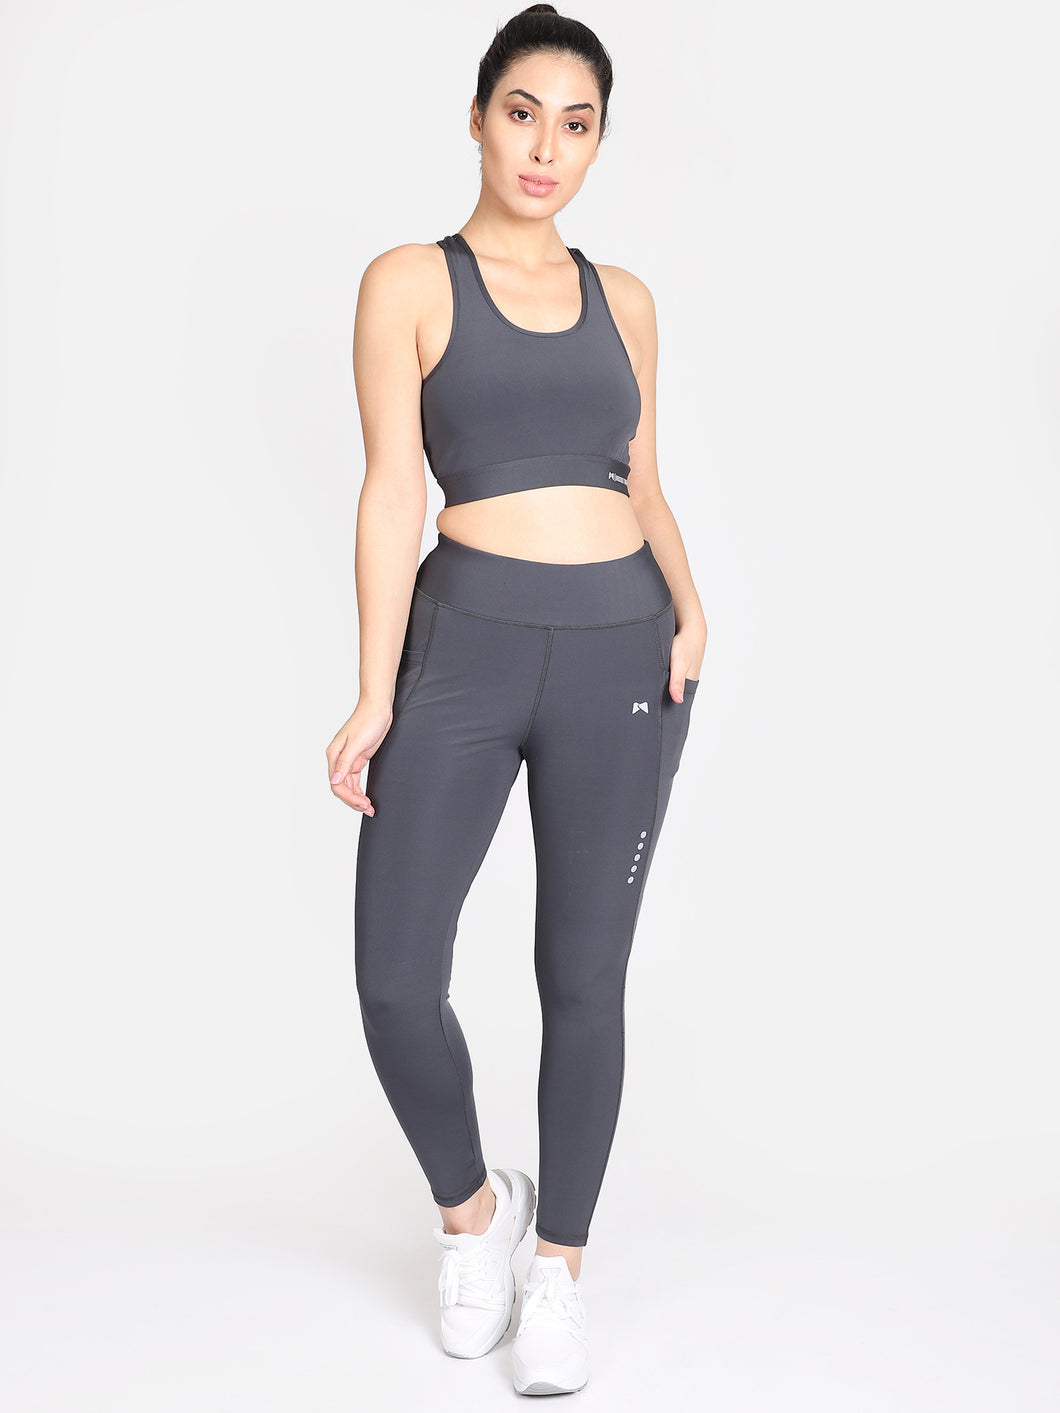 Gym/Yoga Tight With Sports Bra Grey Complete Set